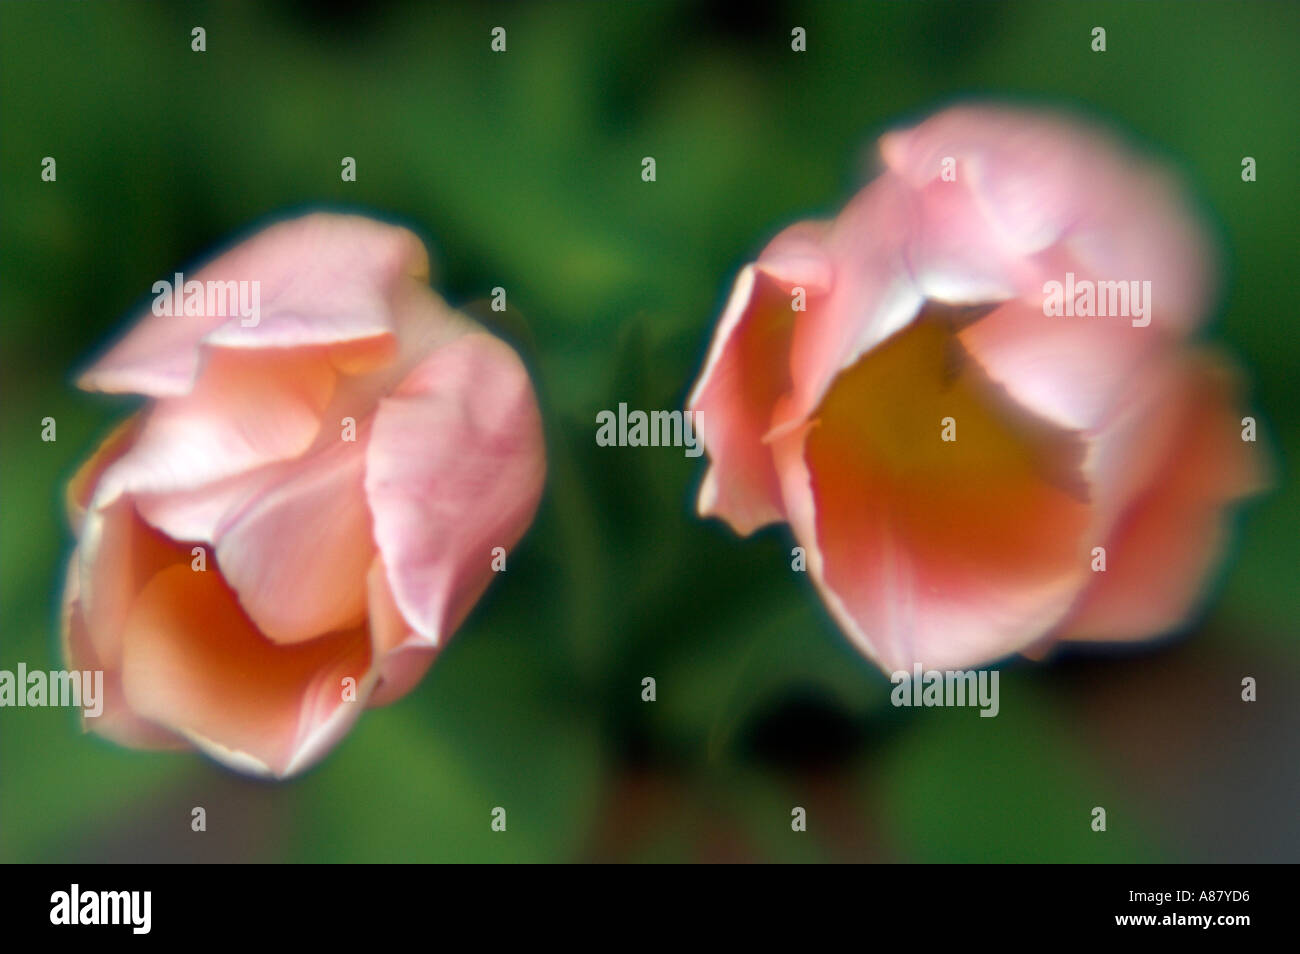 Tulip Apricot Beauty Pink Peach Tulips - Stock Image